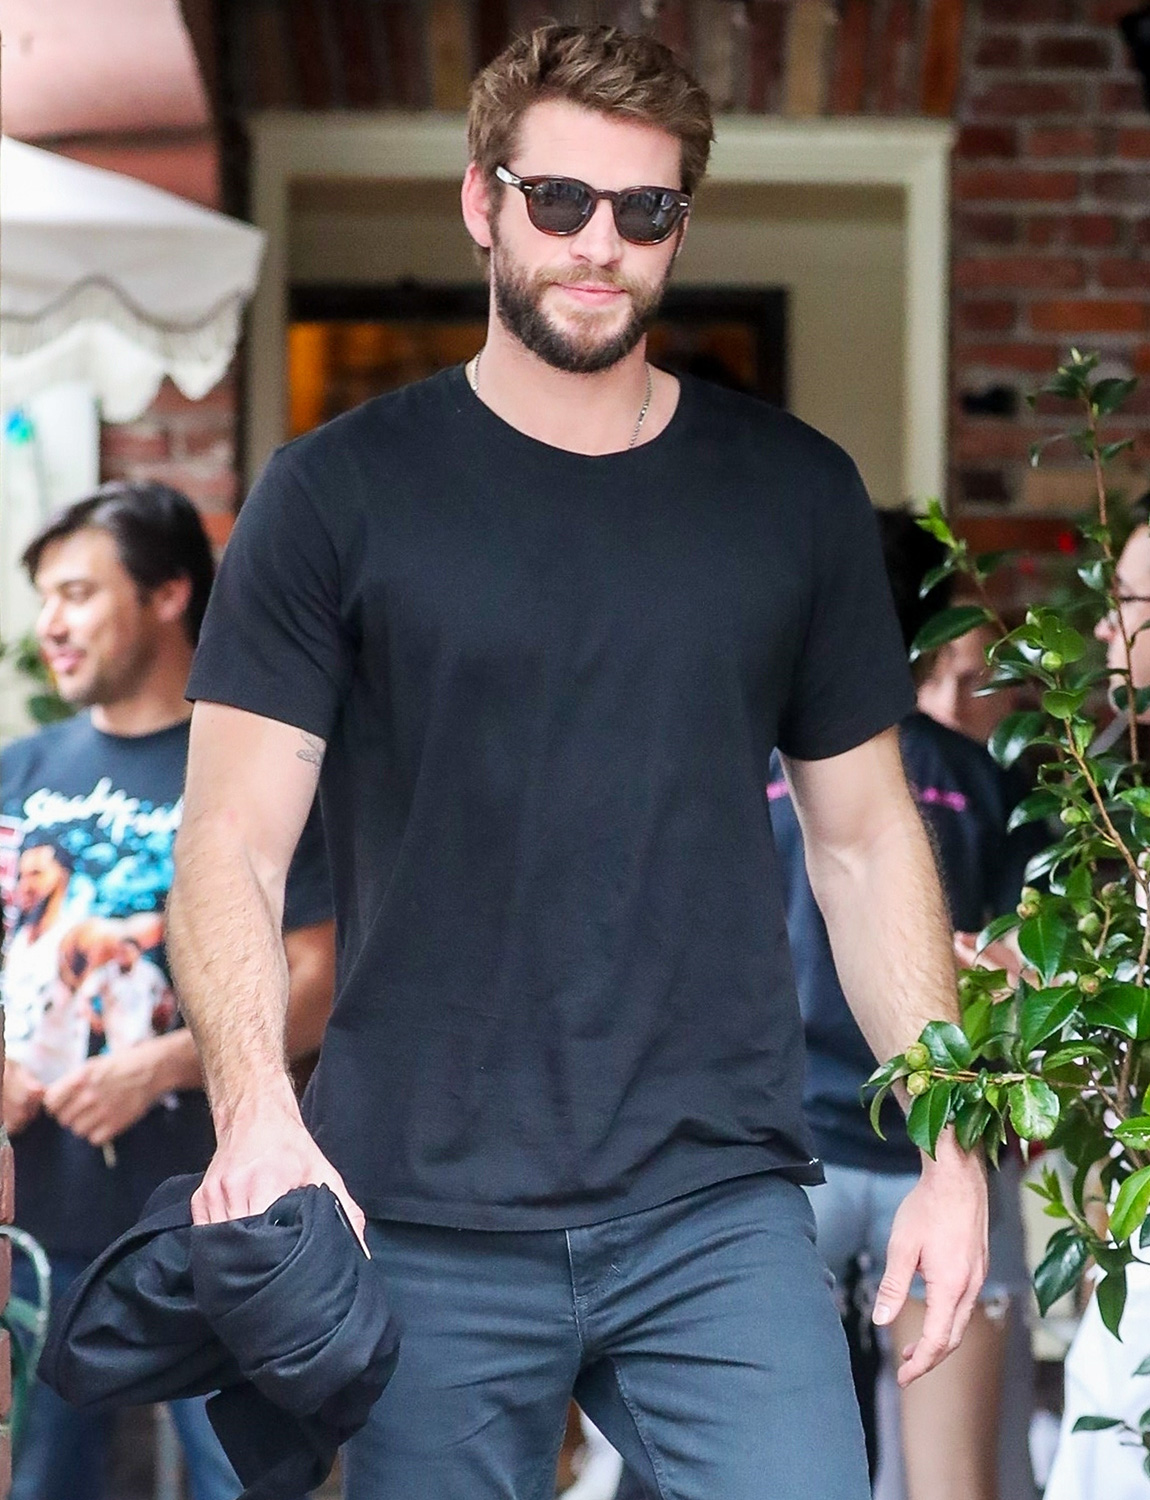 Liam Hemsworth is out for lunch with his brother Luke, model girlfriend Gabriella Brooks, and their friends